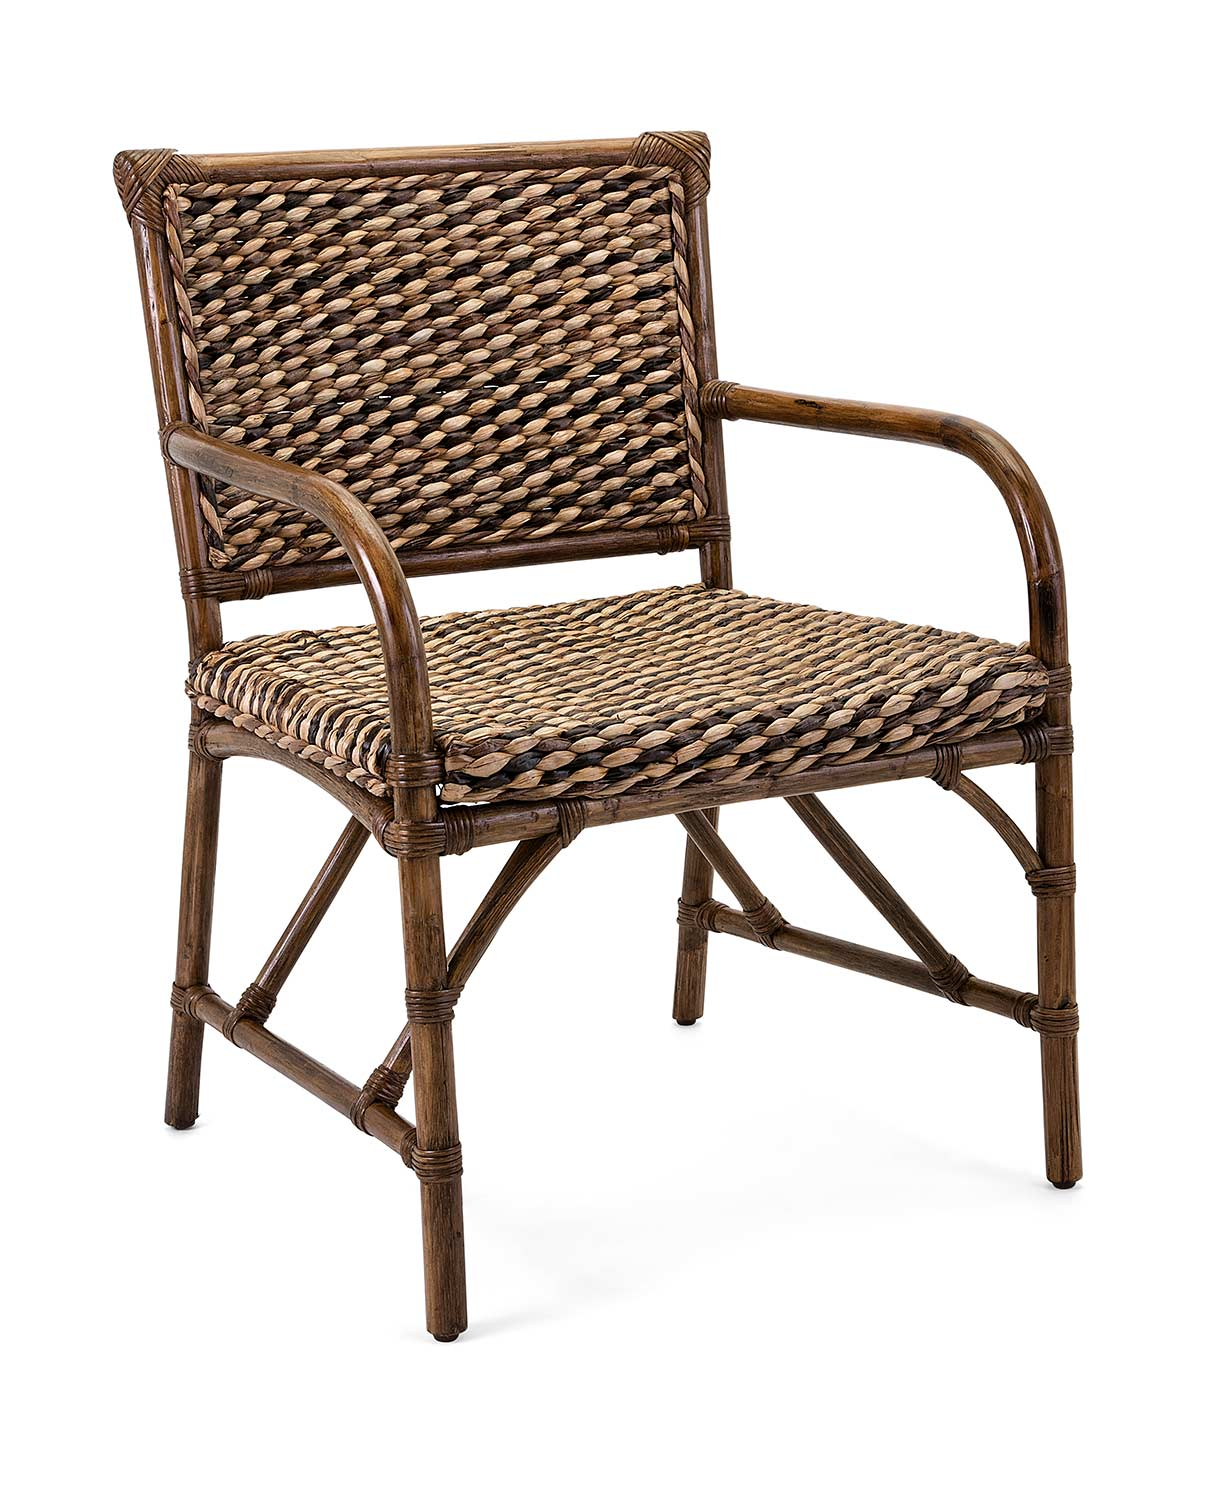 IMAX Boracay Rattan Arm Chair